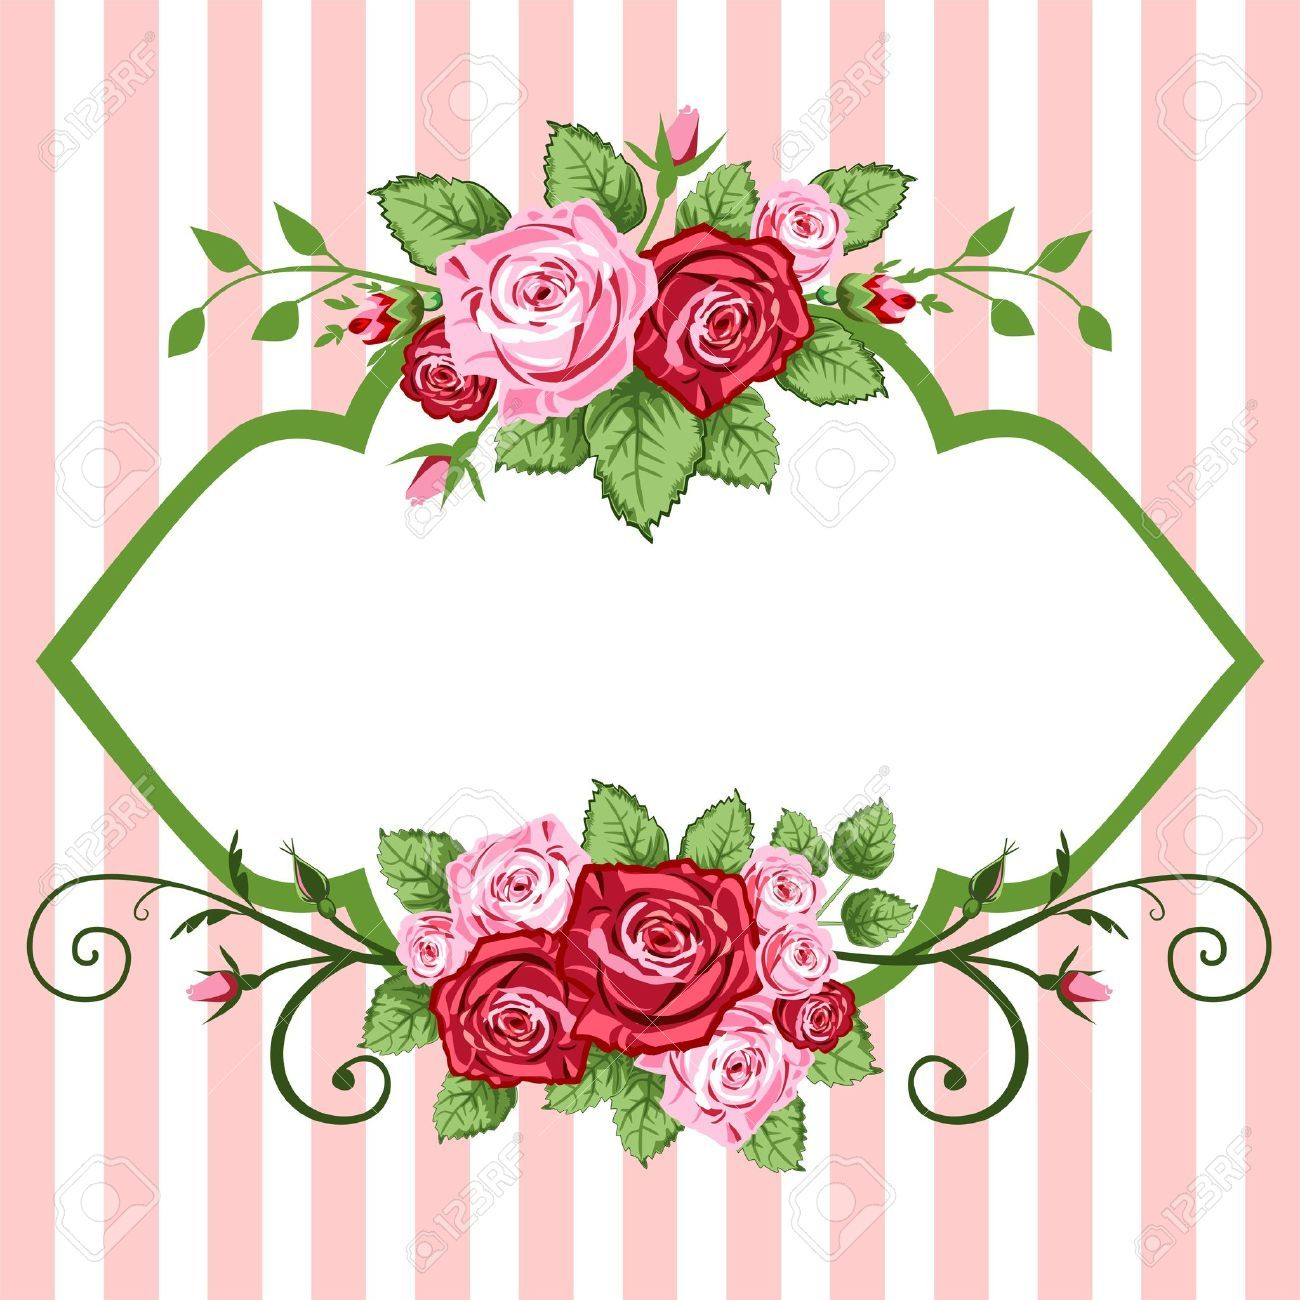 Rose Flower Vector Cliparts, Stock Vector And Royalty Free